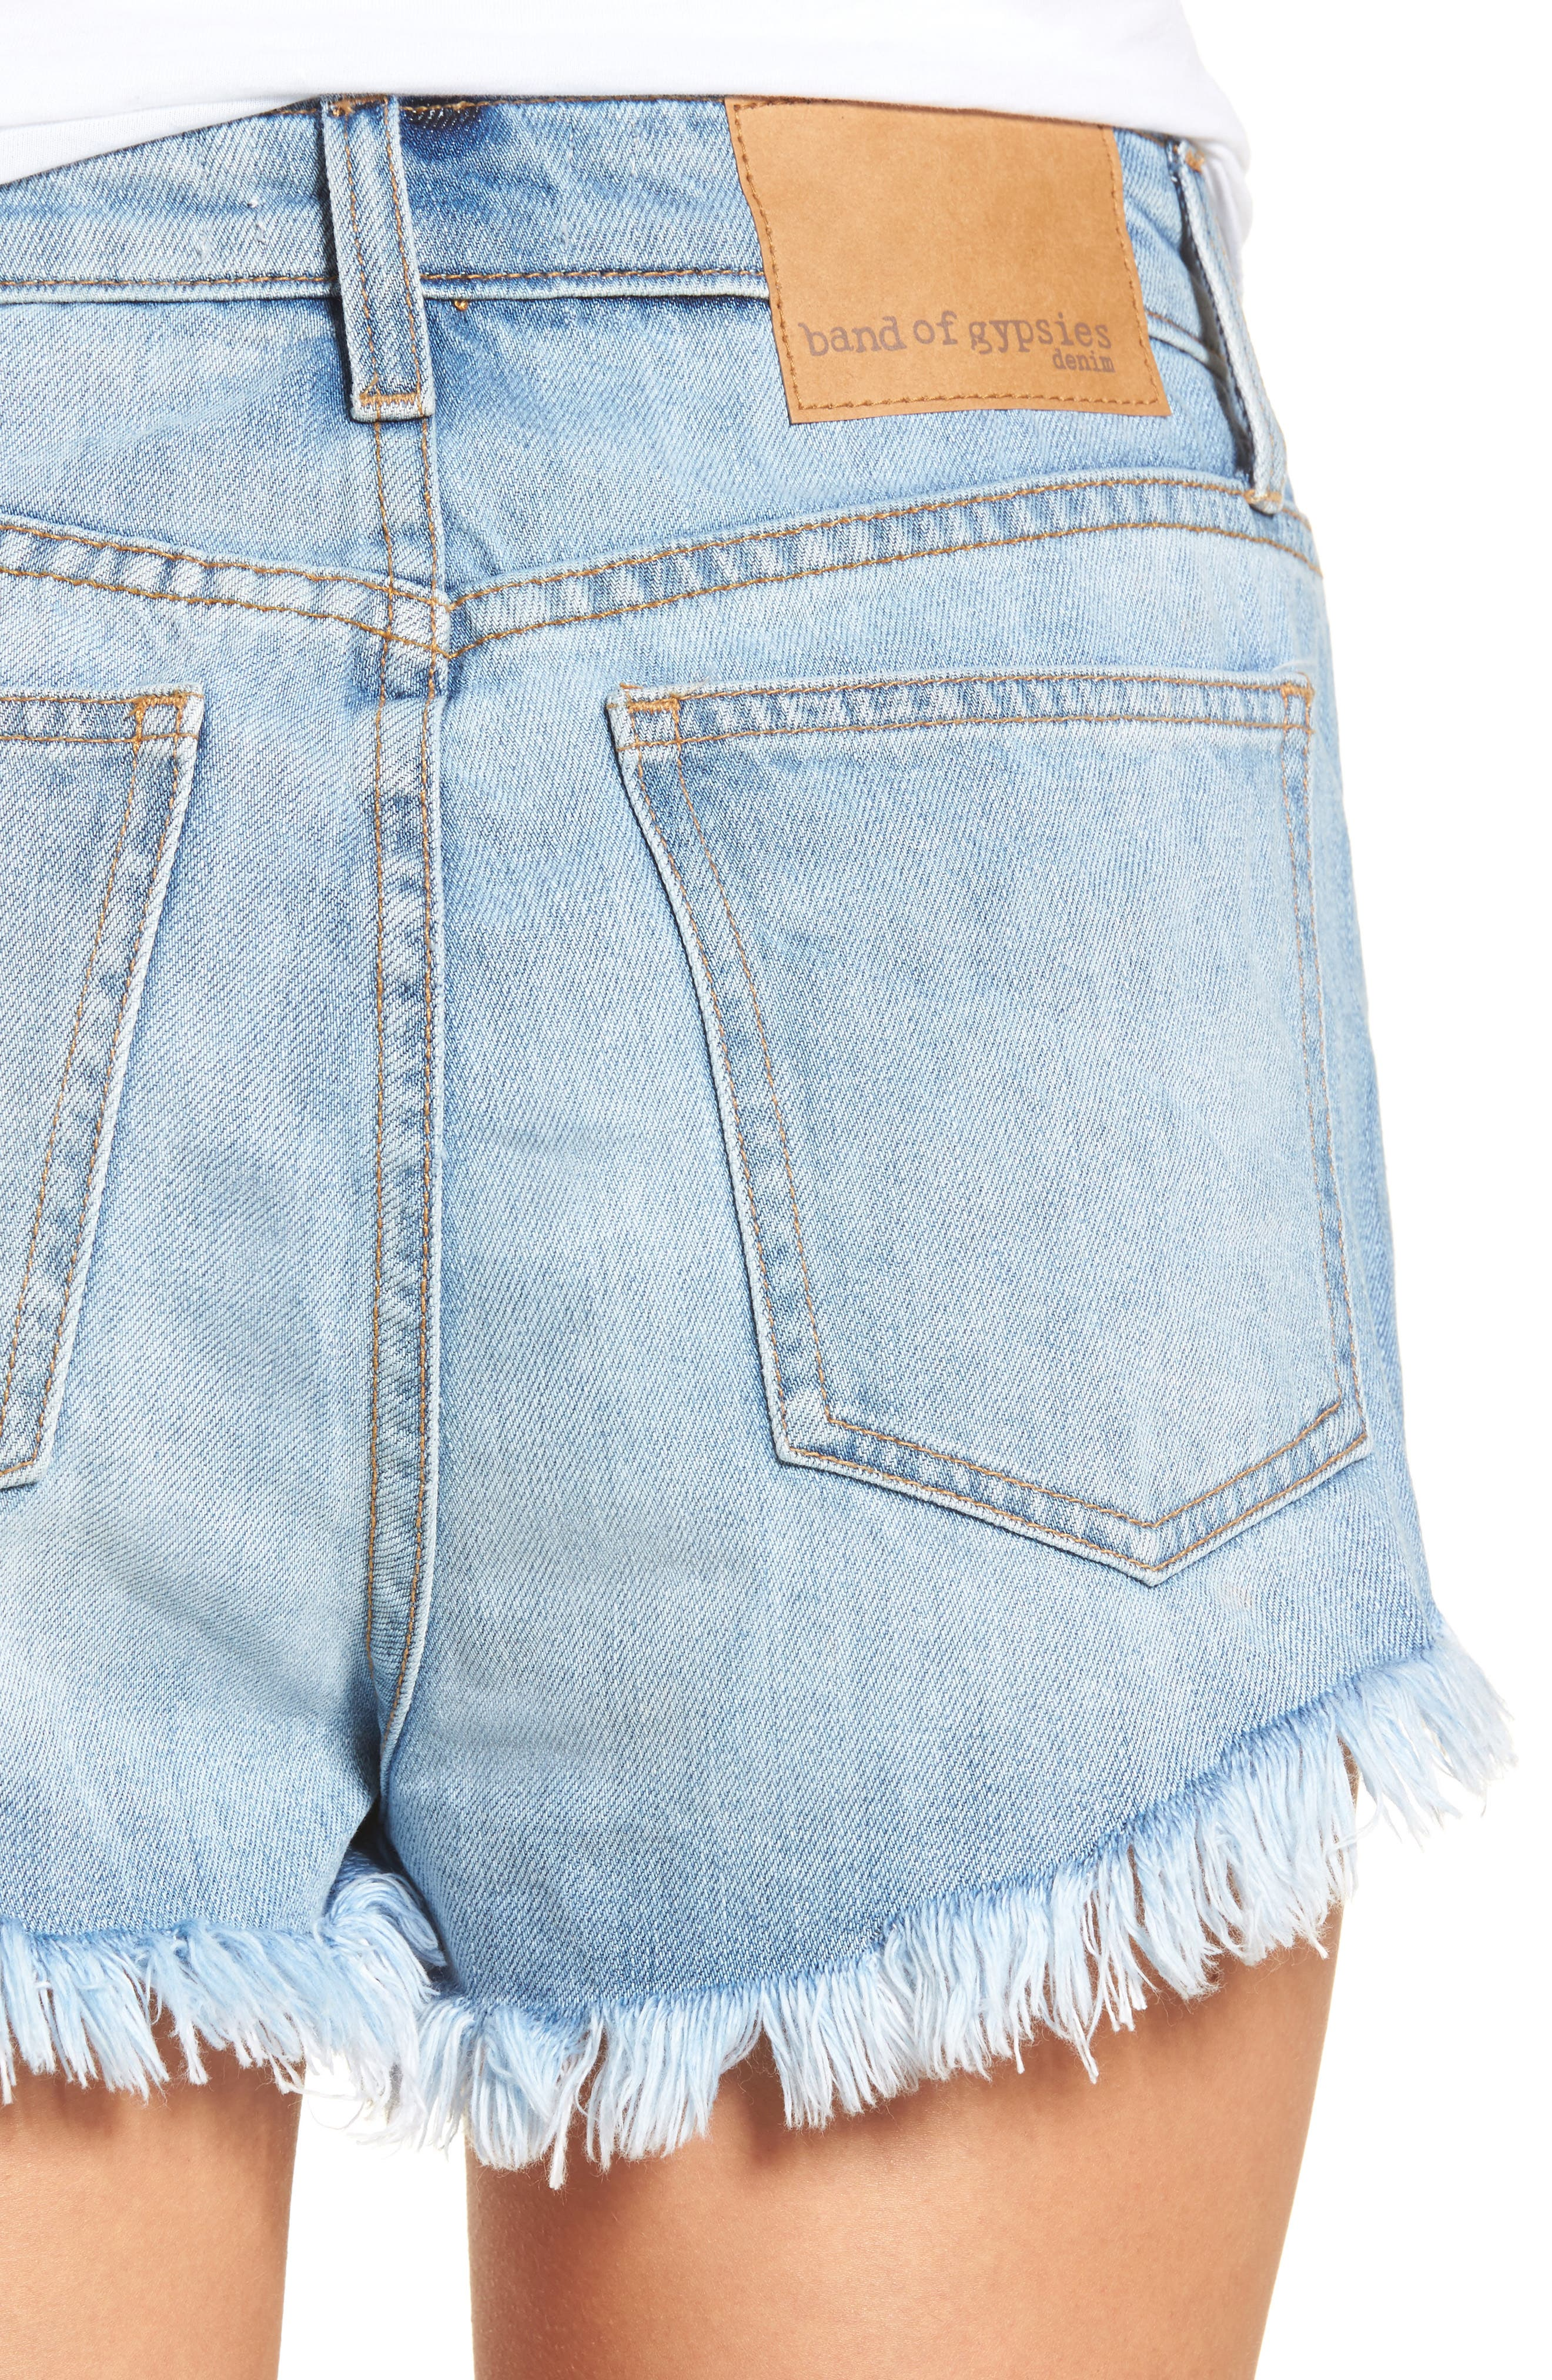 Riley Cheeky Denim Shorts,                             Alternate thumbnail 4, color,                             Blue Fest